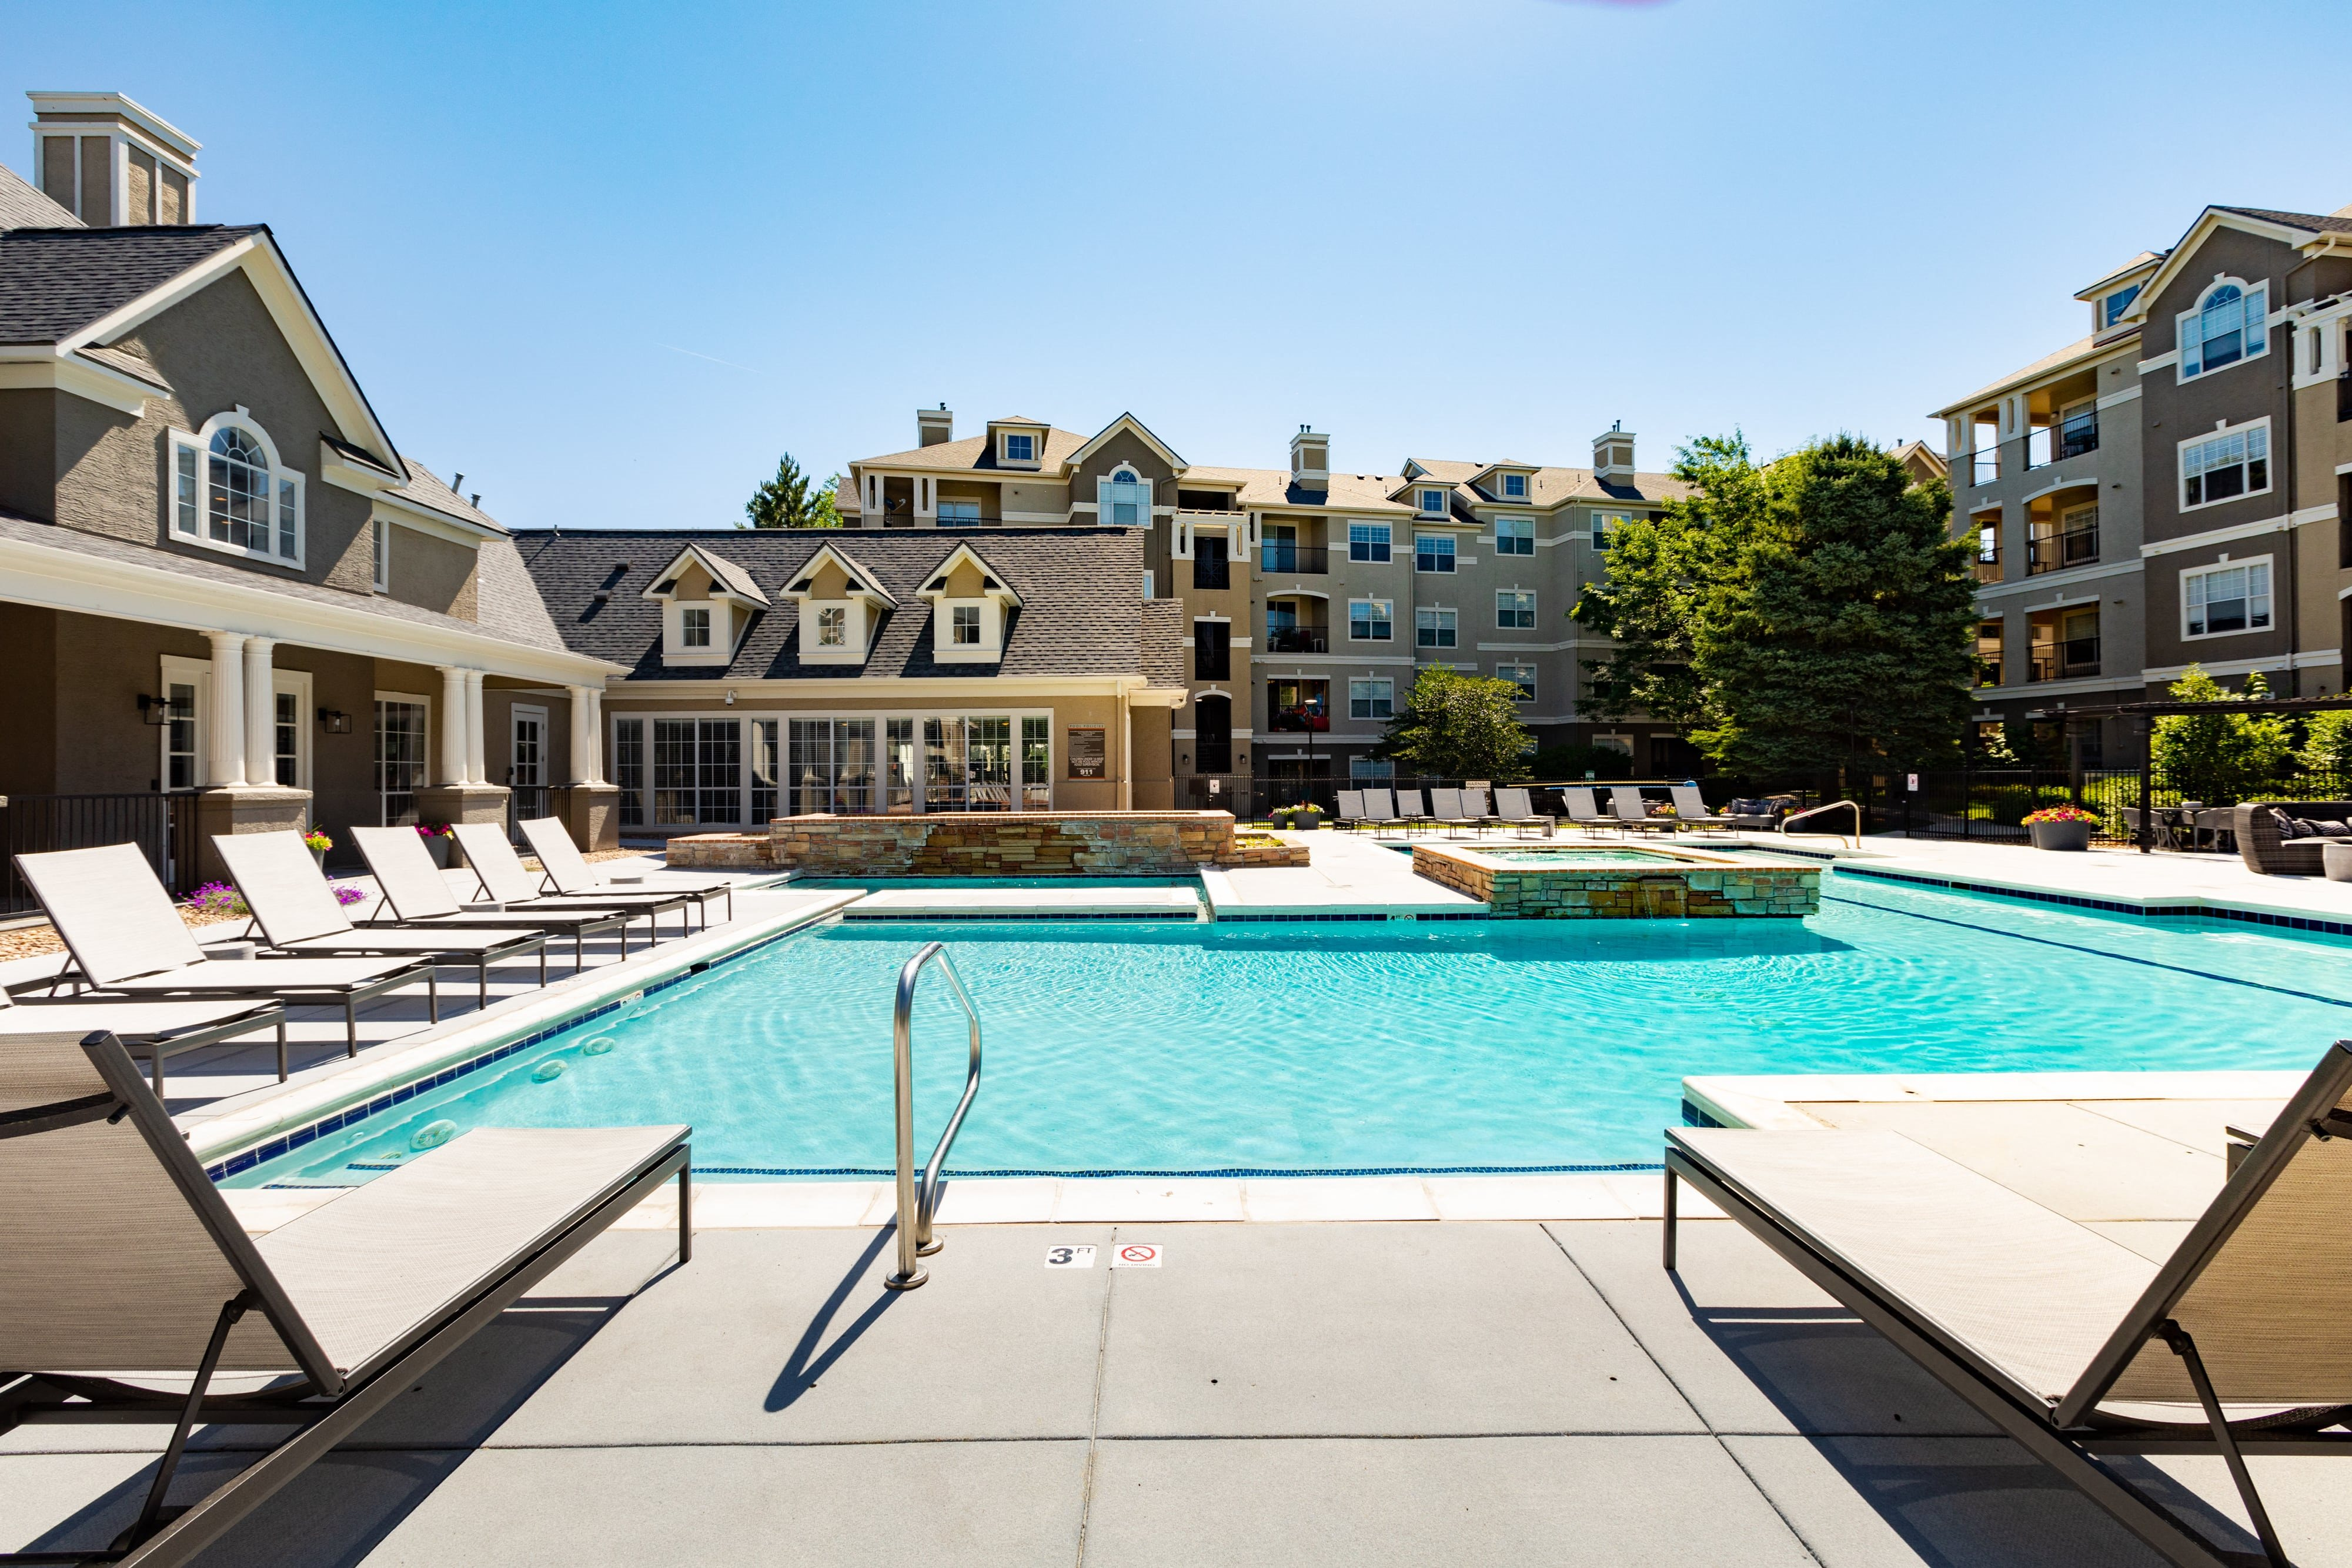 heated swimming pool and lounge area | Greenwood Plaza Apartments in Centennial, CO